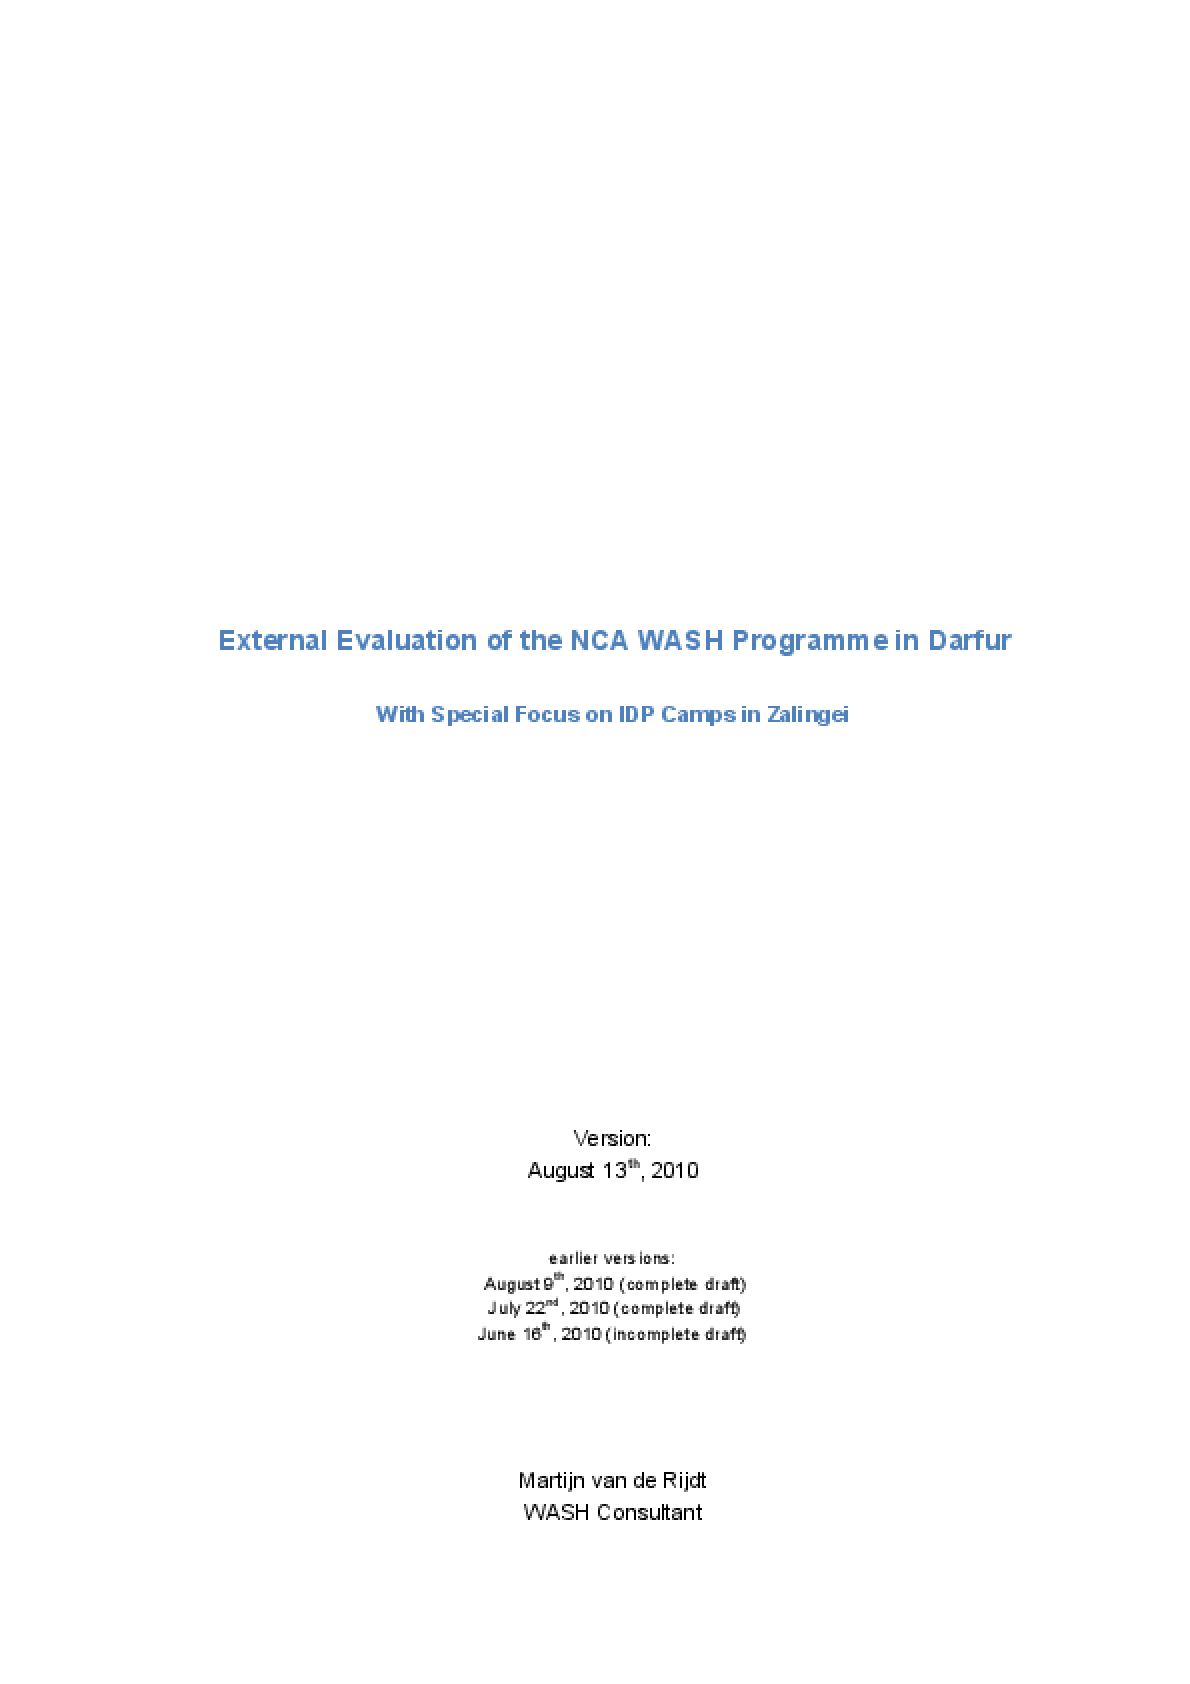 External Evaluation of the NCA WASH Programme in Darfur: With Special Focus on IDP Camps in Zalingei